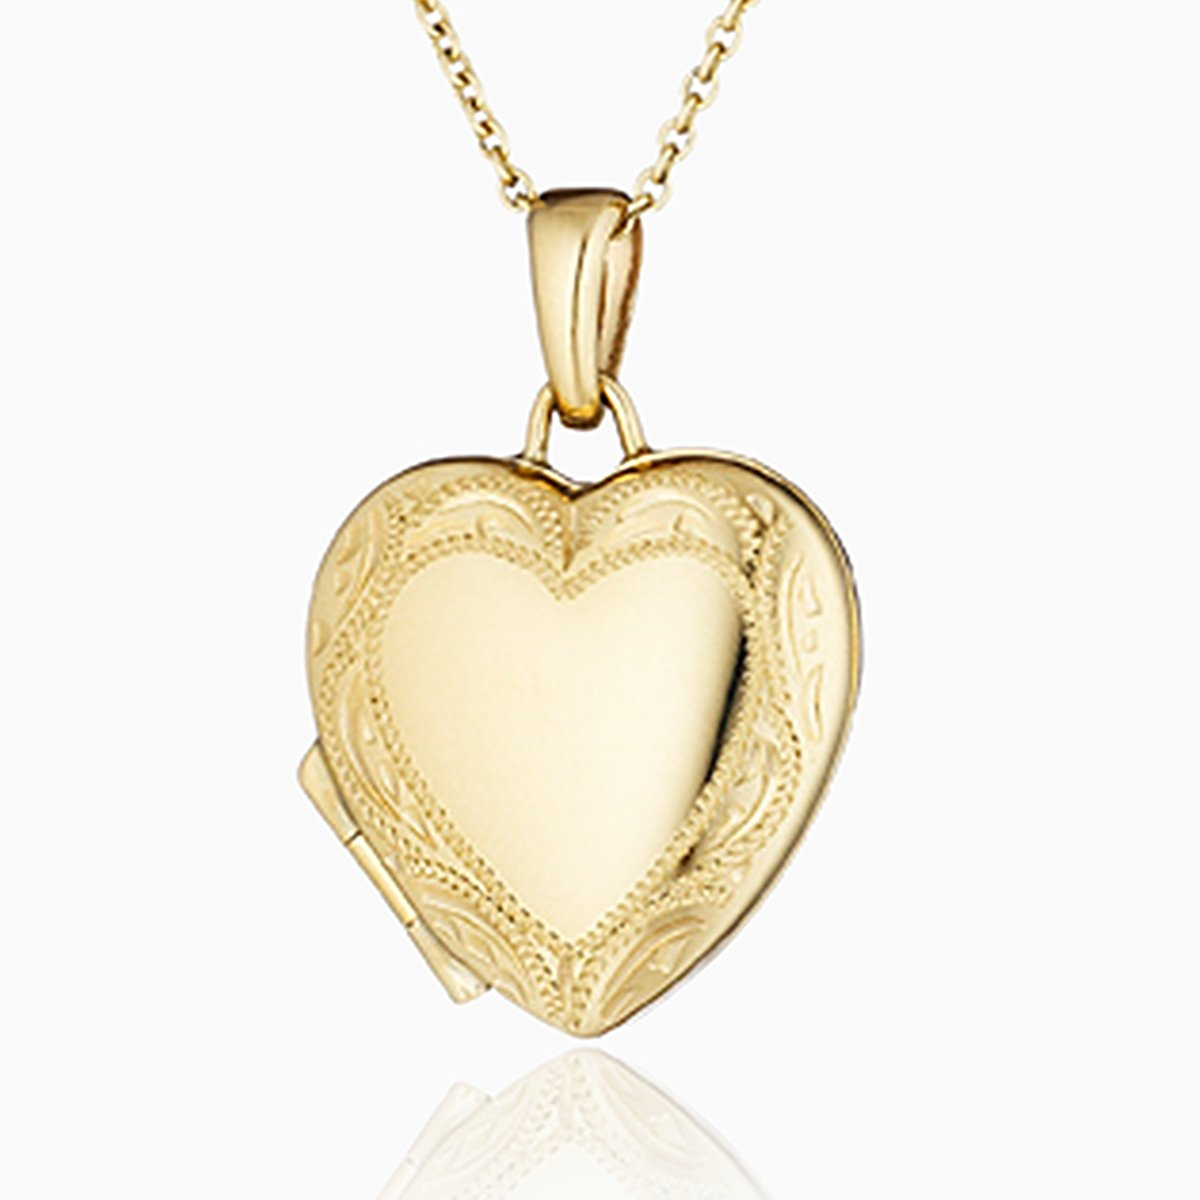 Product title: Gold Border Locket 18 mm, product type: Locket